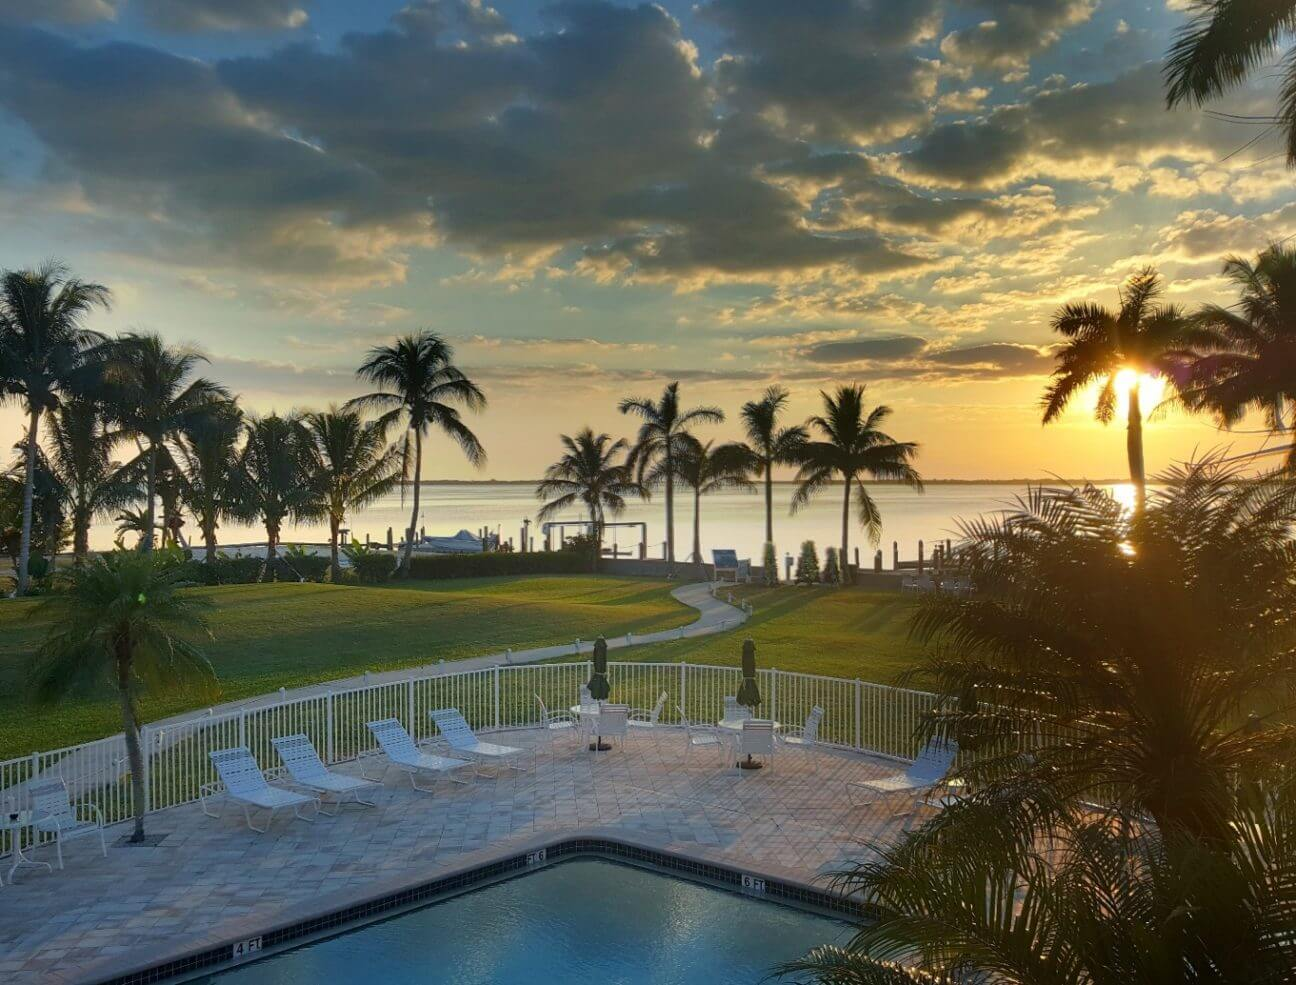 Balcony view of Tarpon Lodge overlooking the pool, the lawn, and the distant waterfront at sunset.